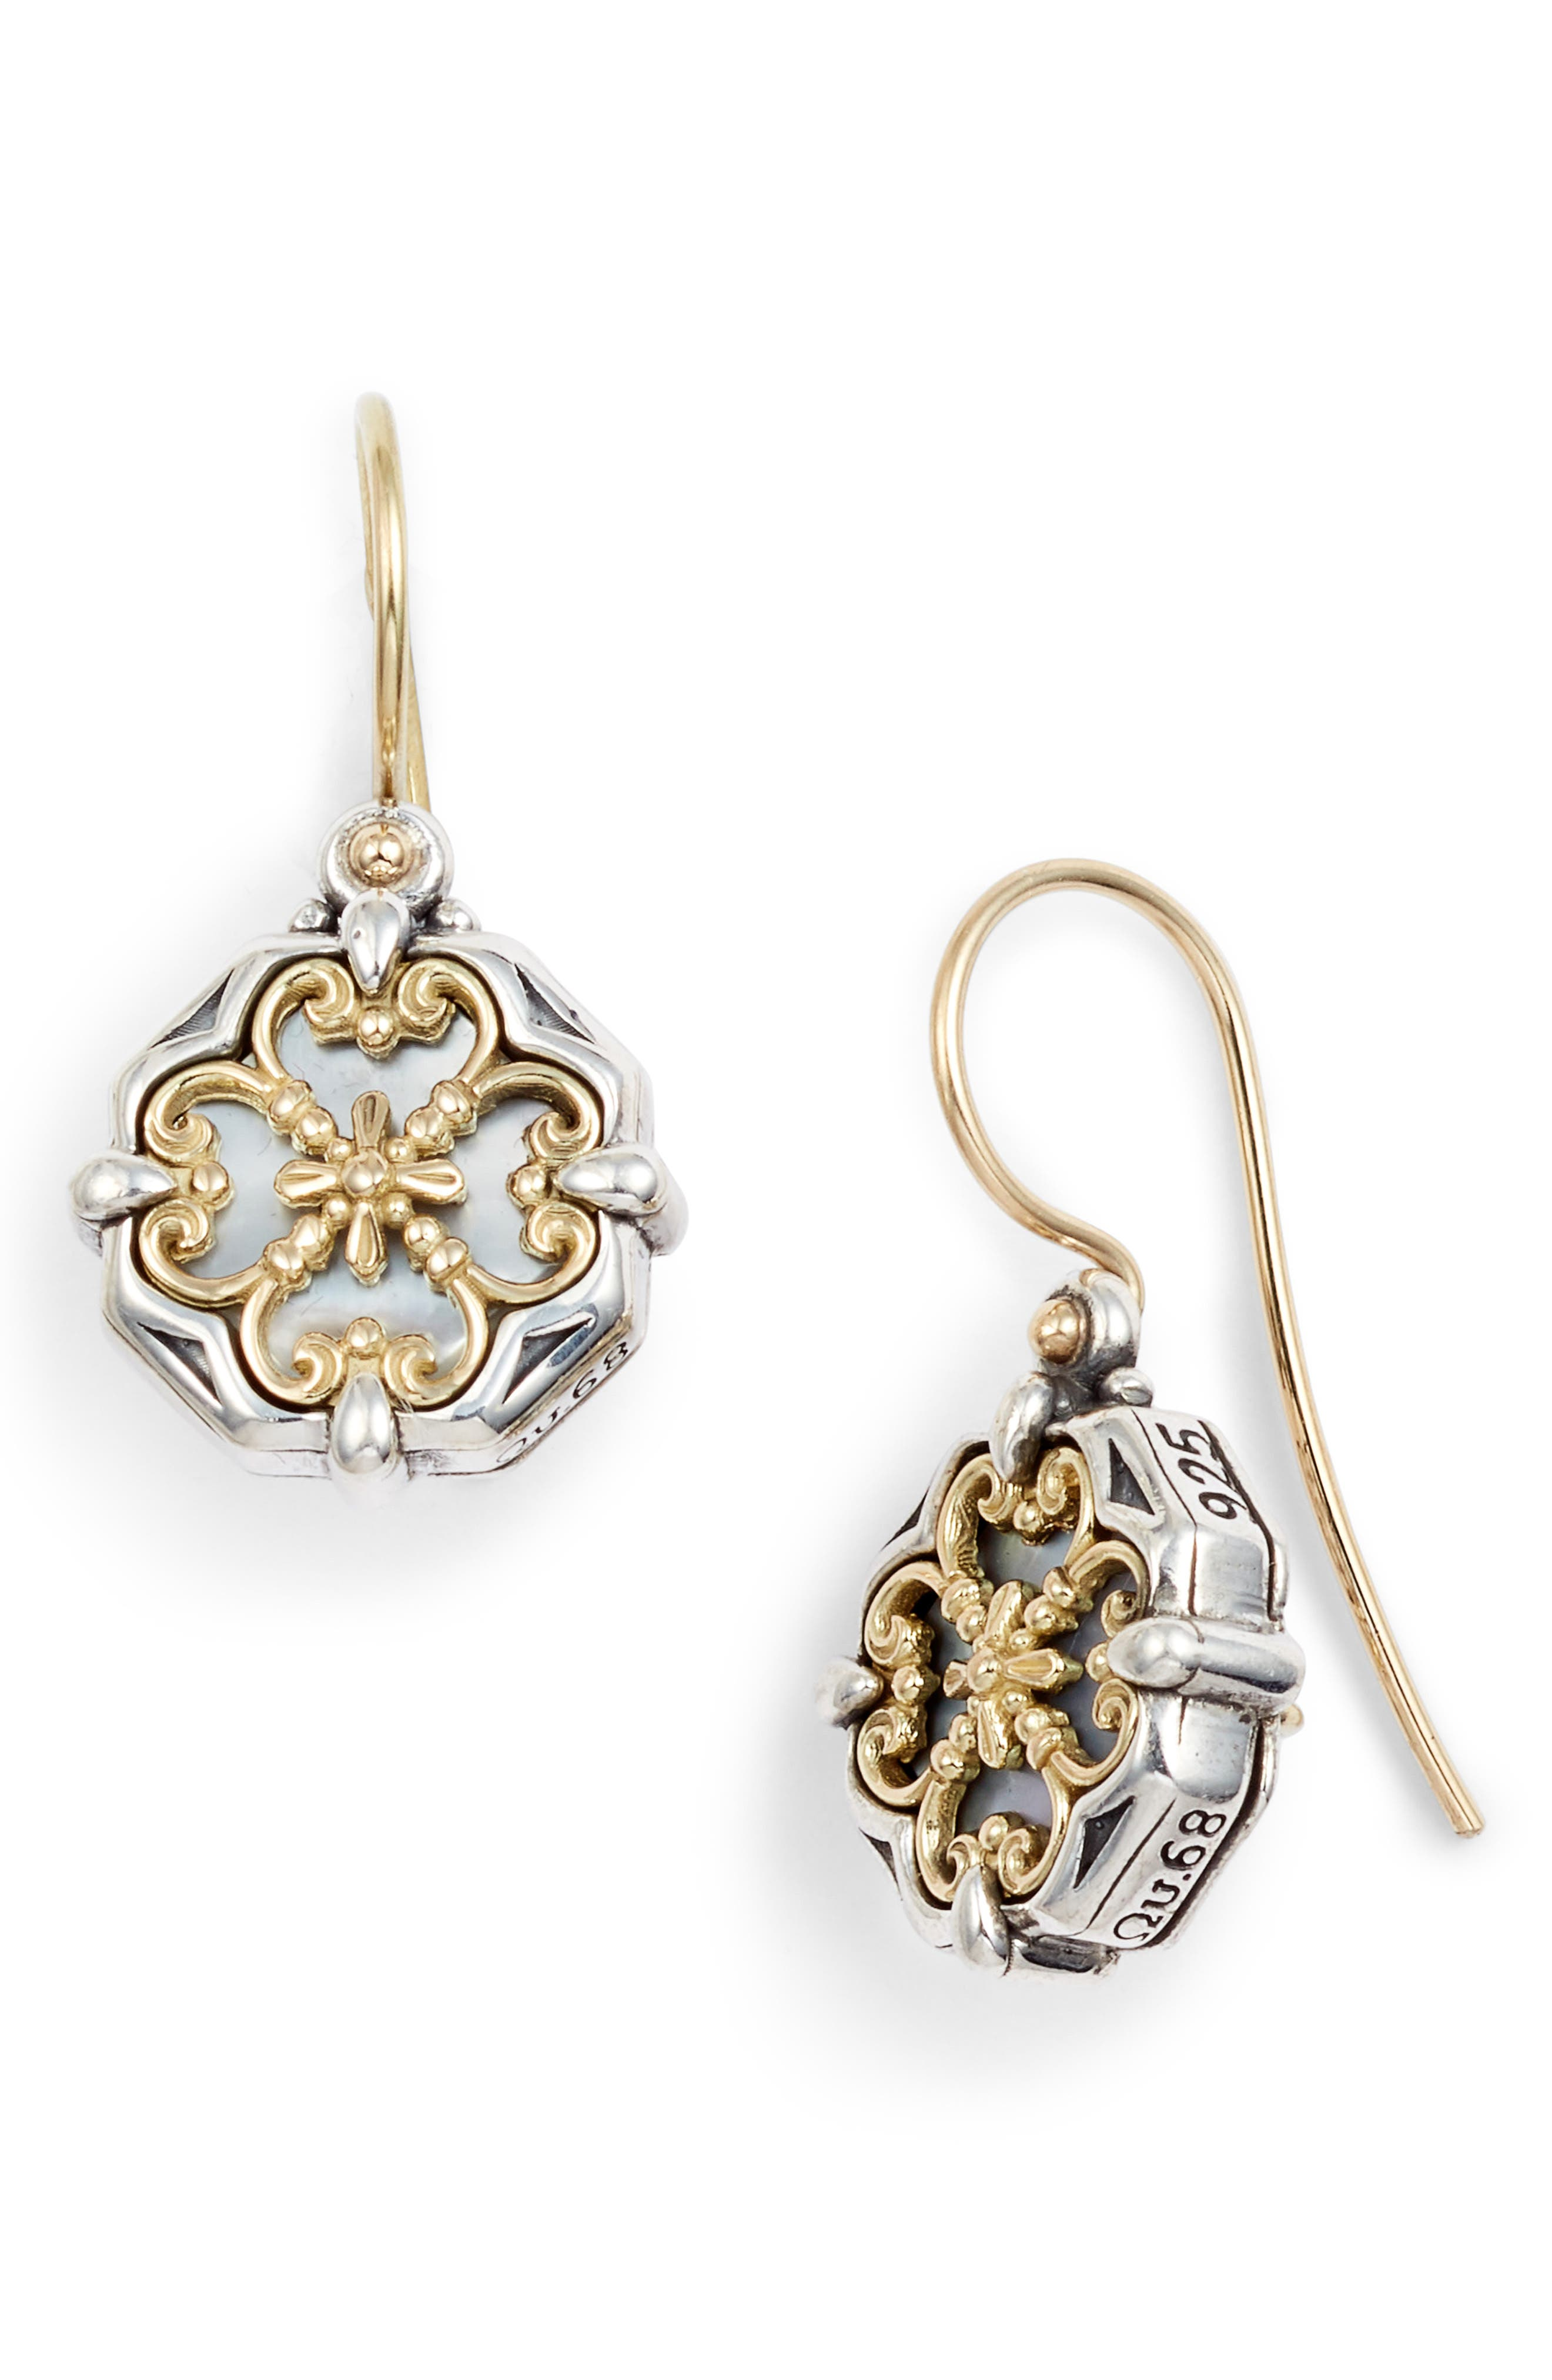 Etched Sterling Silver and Gold Drop Earrings,                             Main thumbnail 1, color,                             040